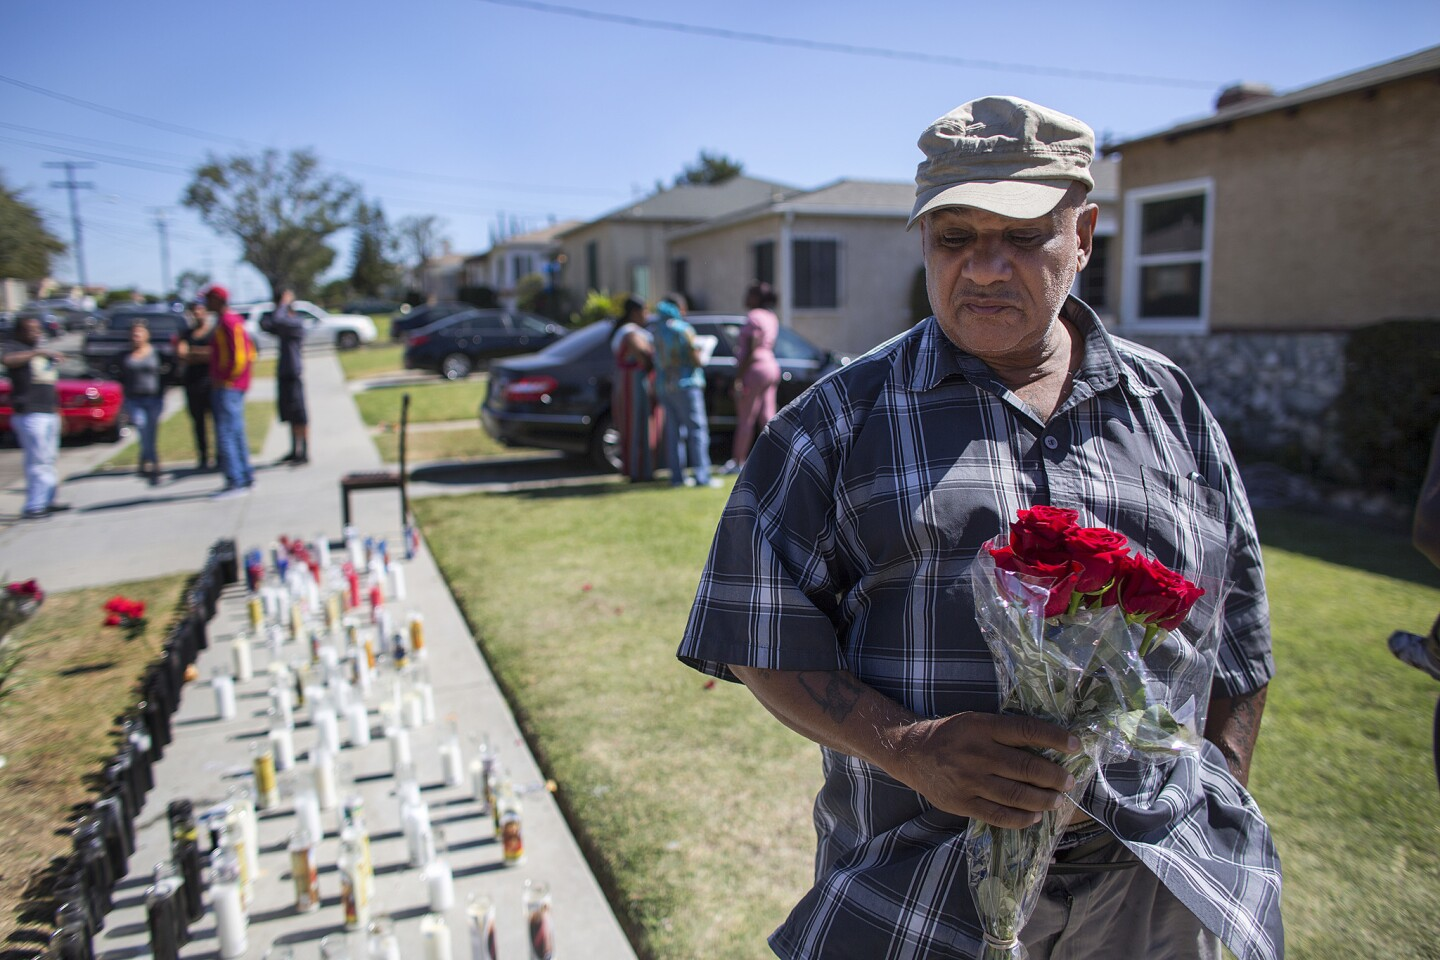 Resident Herbert Baker brings a bouquet of roses to the memorial site for Carnell Snell Jr.